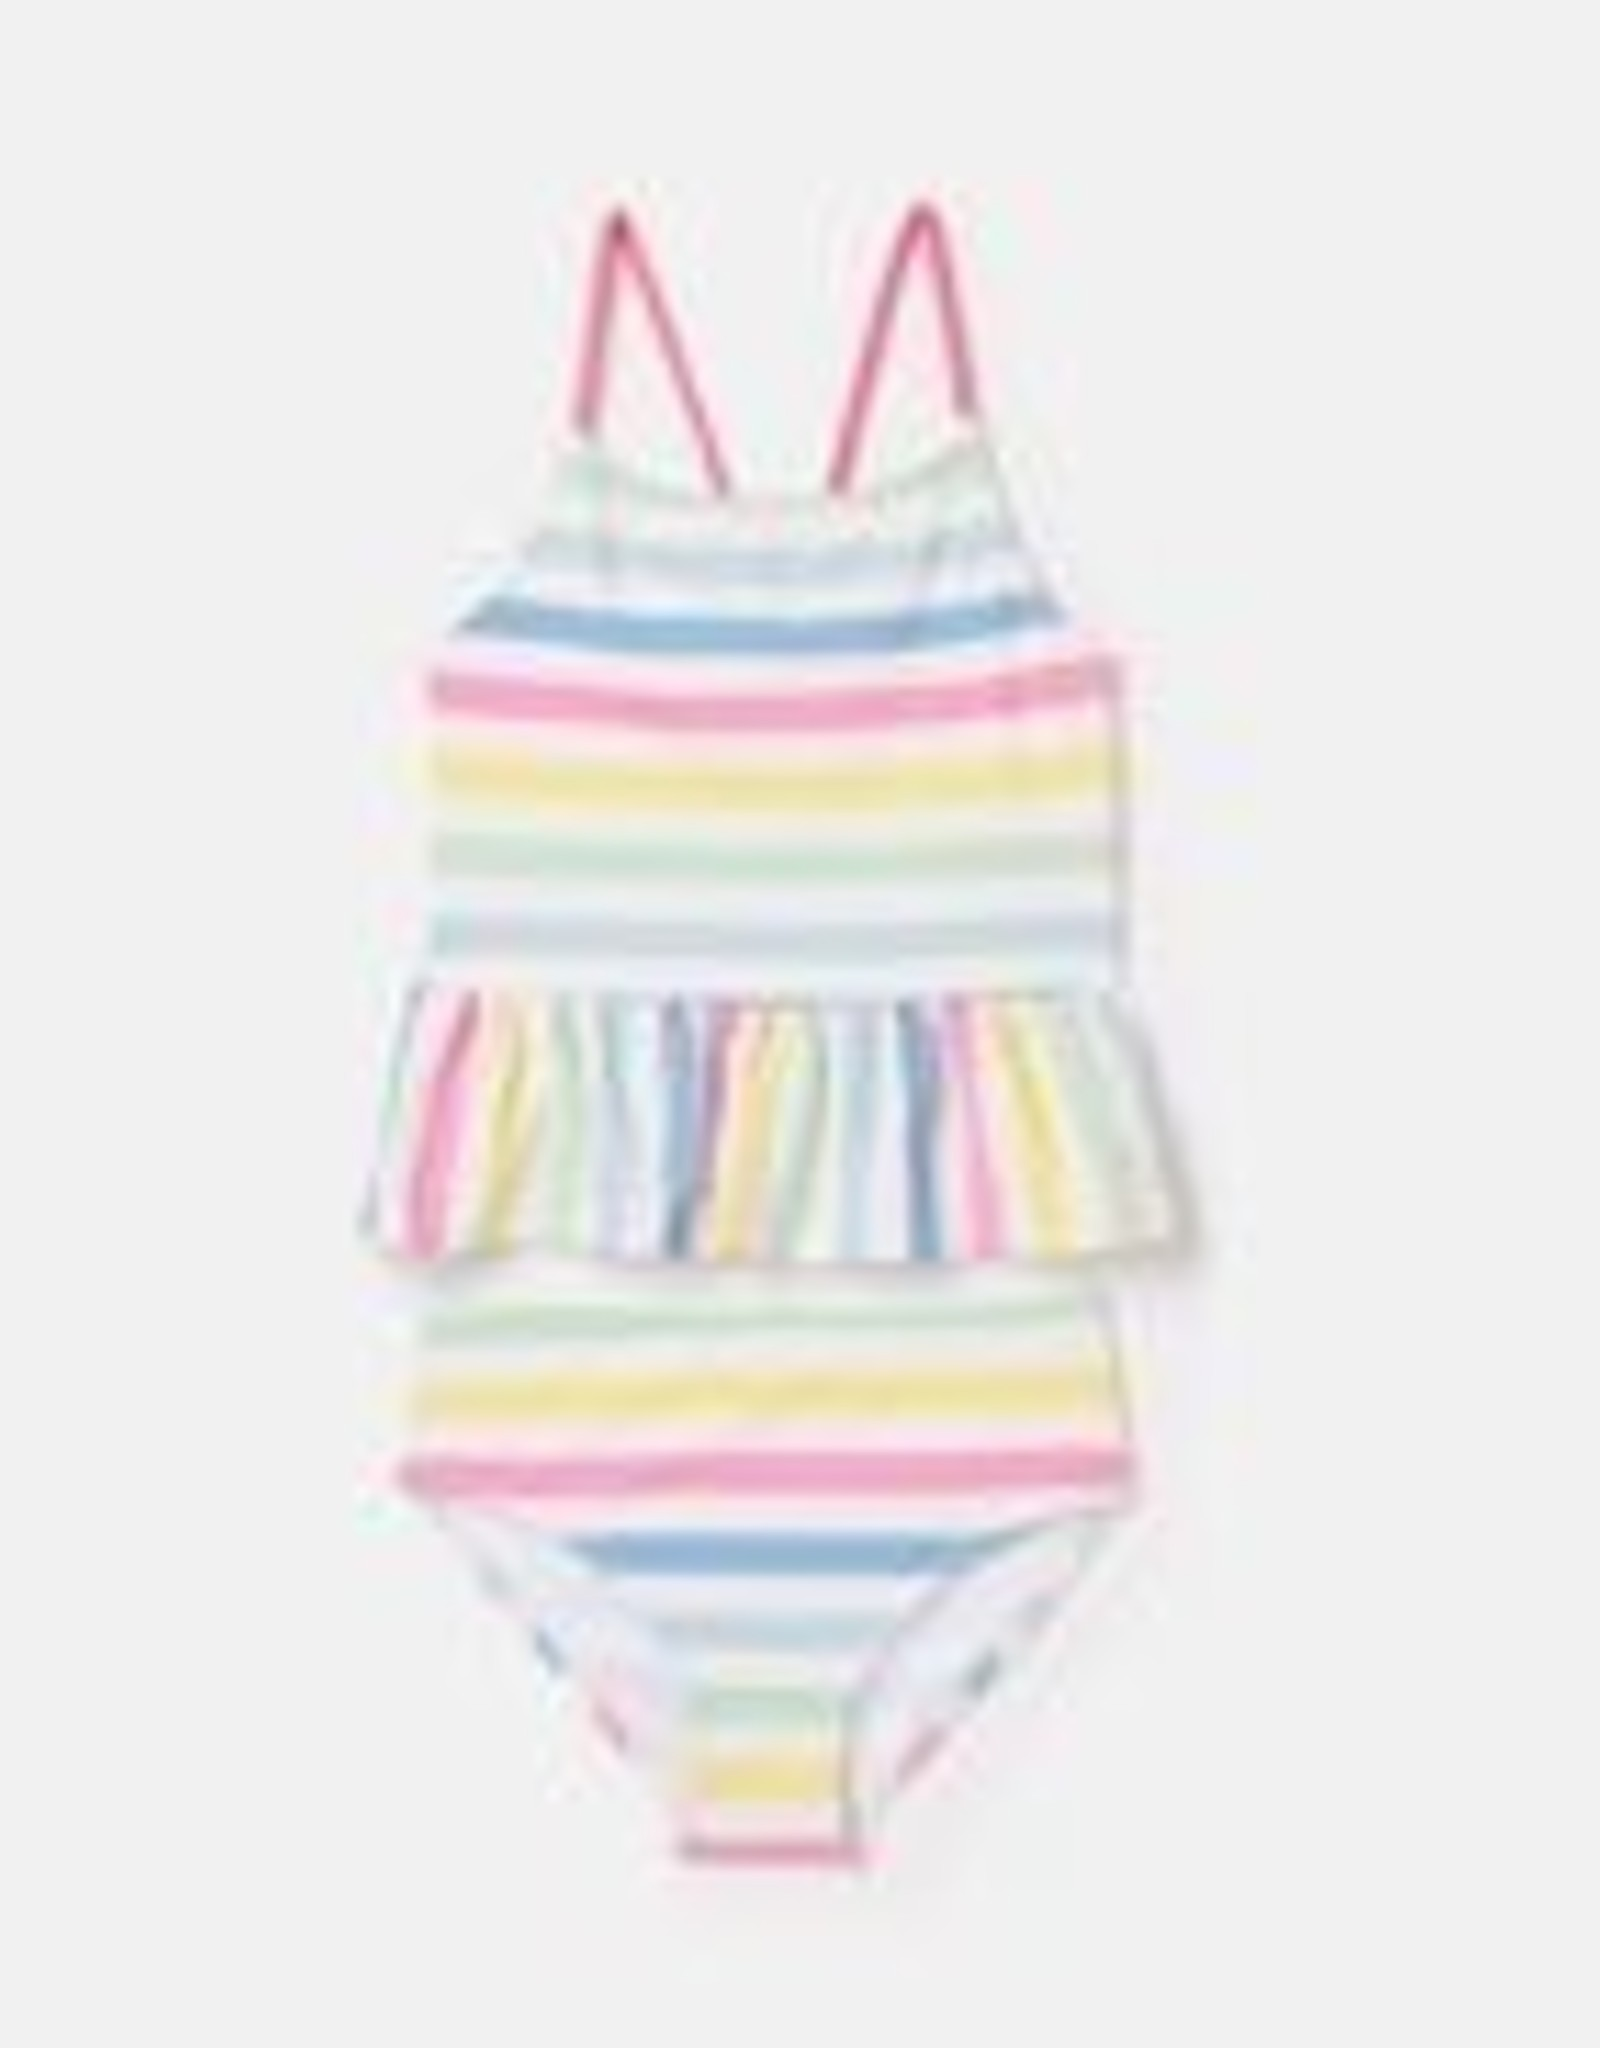 Joules SP21  Sabina Tankini  2 pc Set